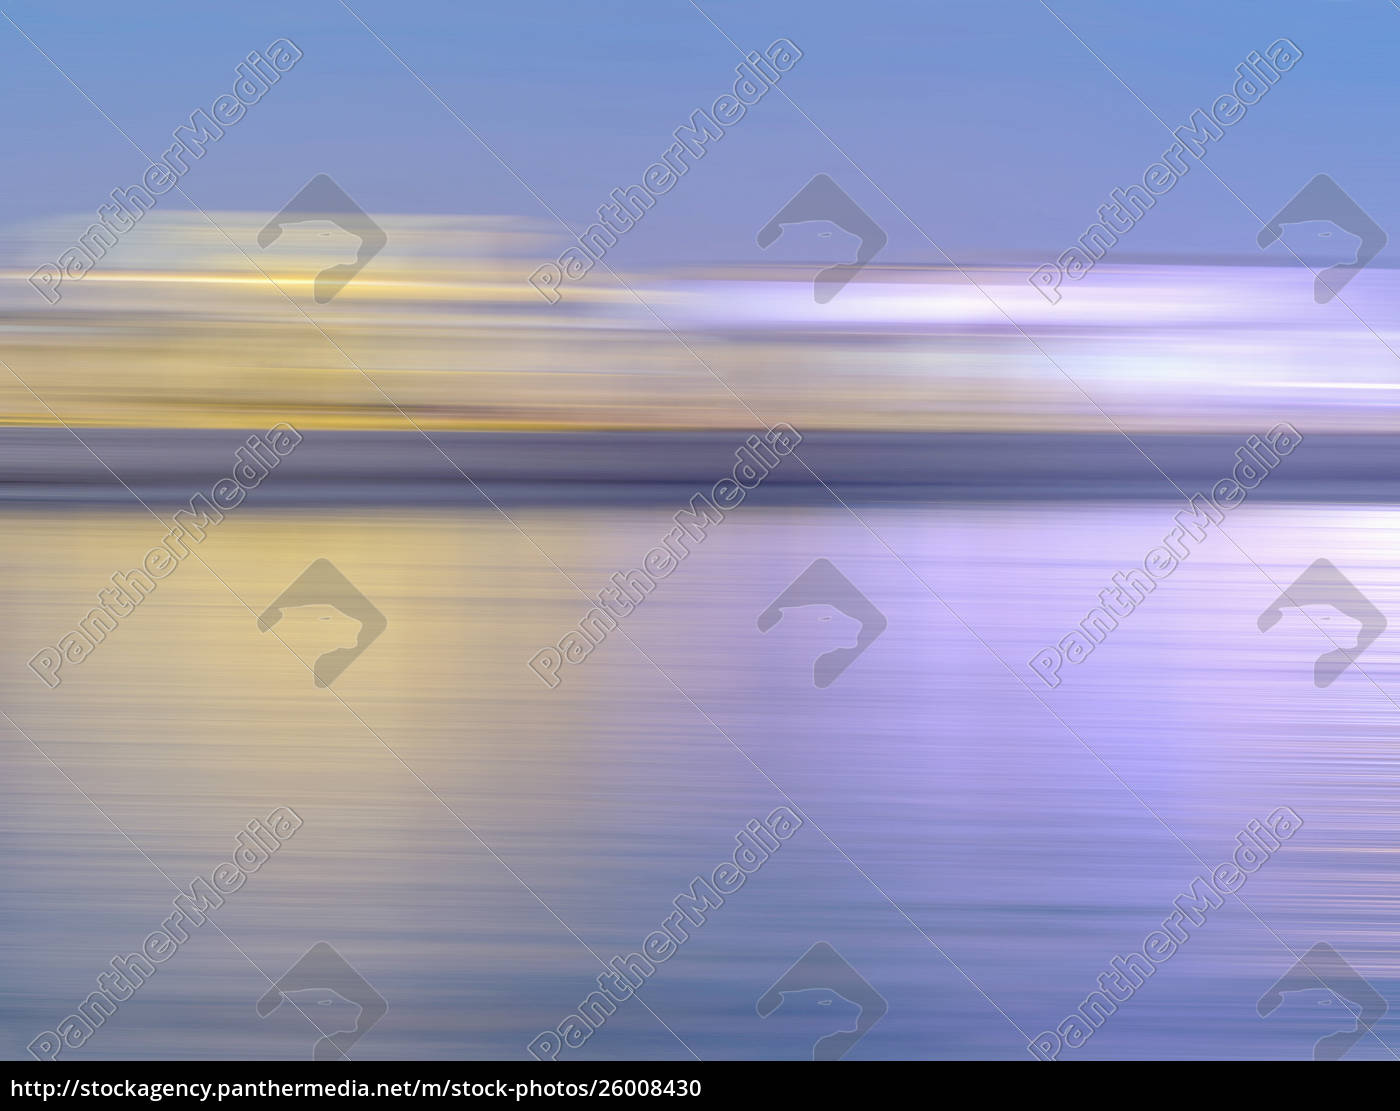 abstract, blurred, motion, skyline, over, water - 26008430